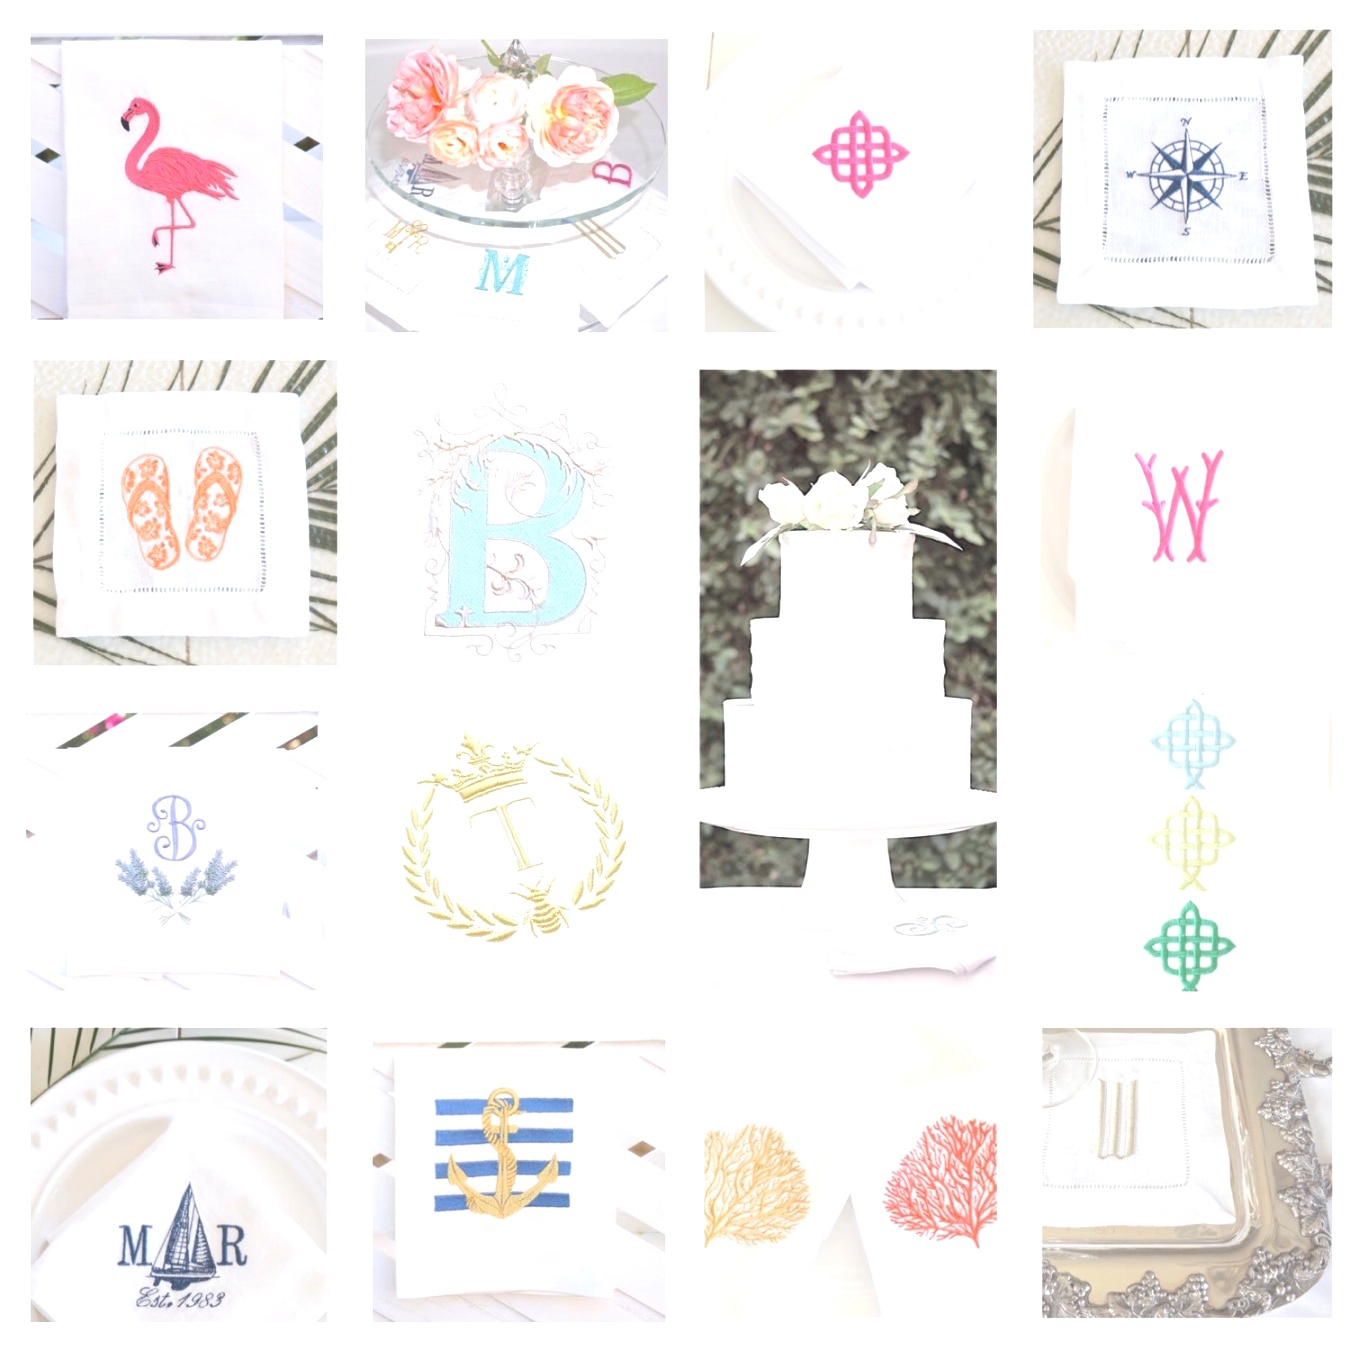 monogrammed table linens | Coral Embroidered Dinner Napkins, Cocktail Napkins and Hand Towels ..